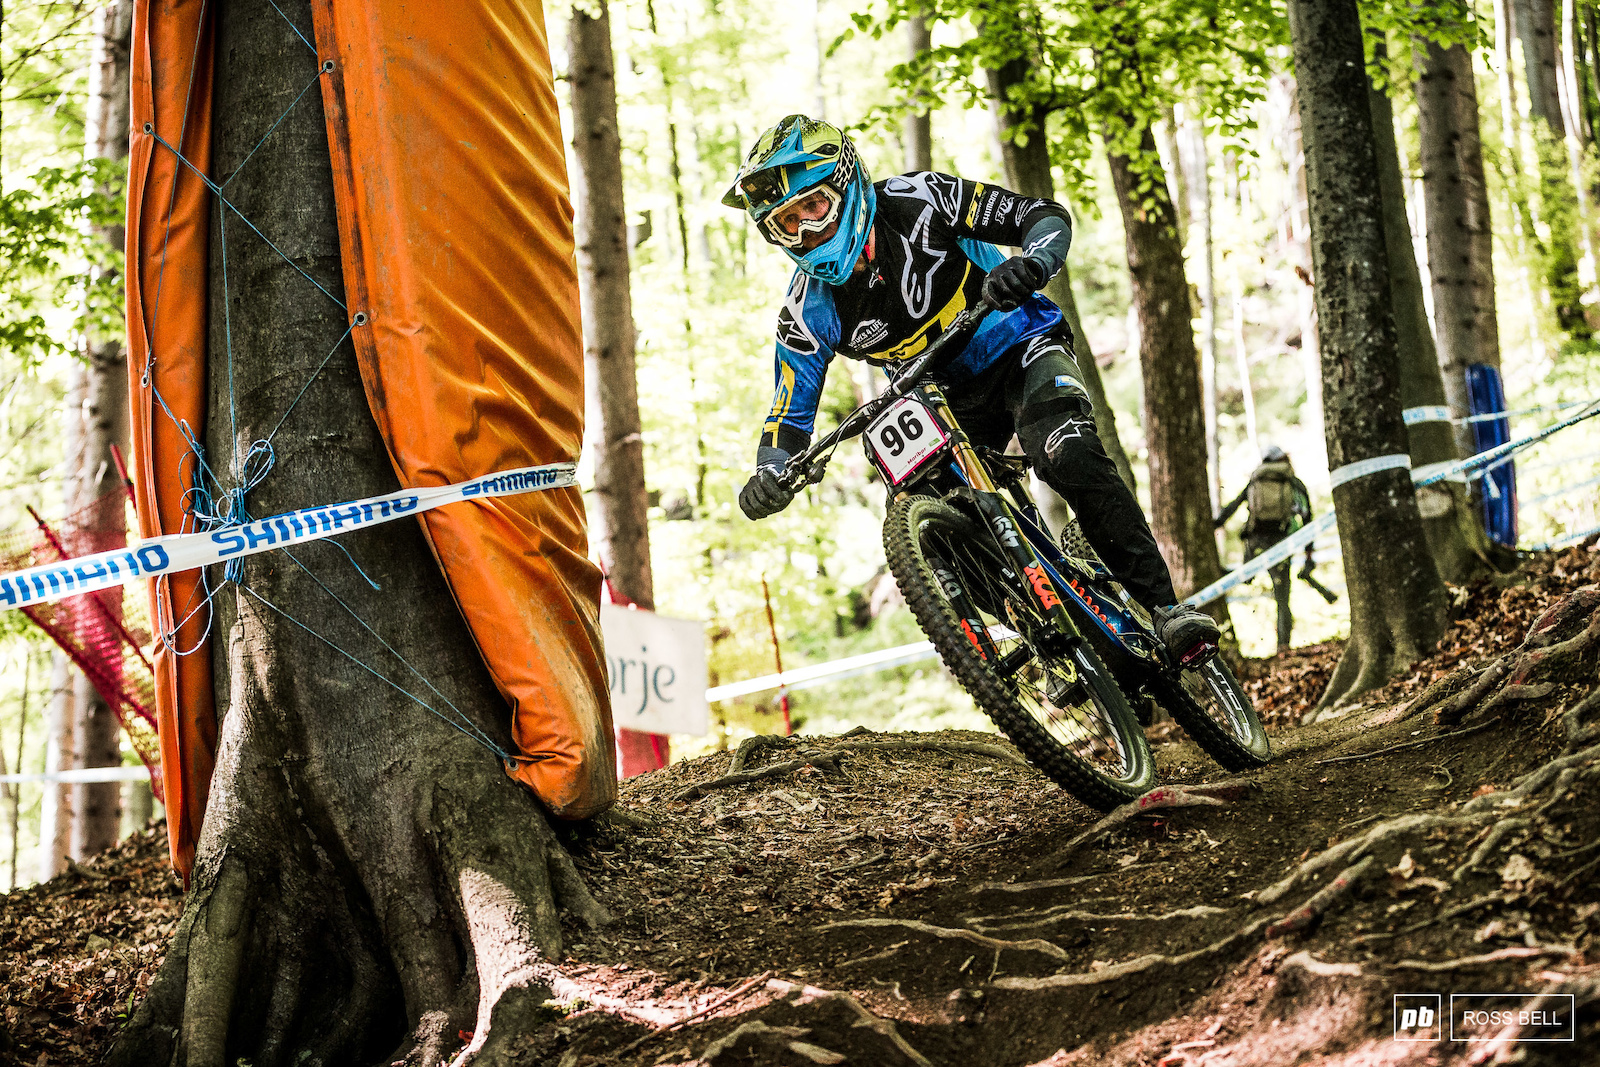 It s good to see George Brannigan back swinging off a downhill bike. After a while on the sidelines with injury he returns and qualifies 10th.